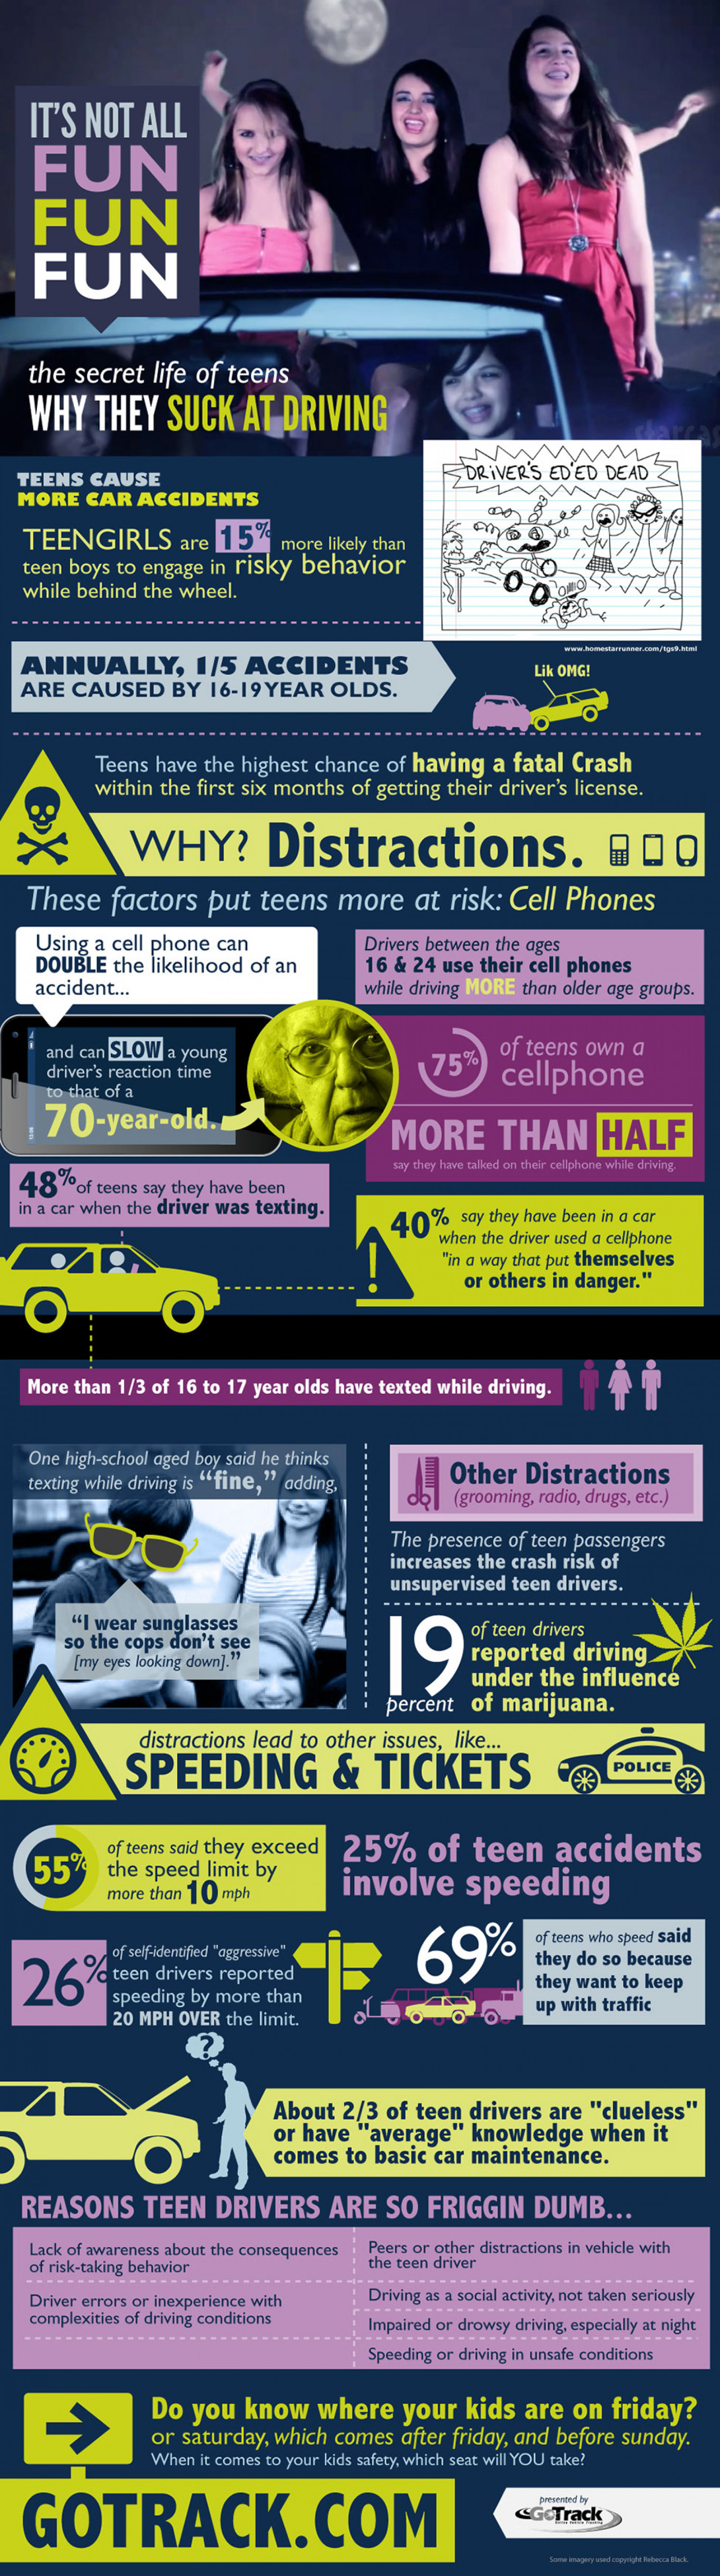 Why Teens Suck At Driving Infographic